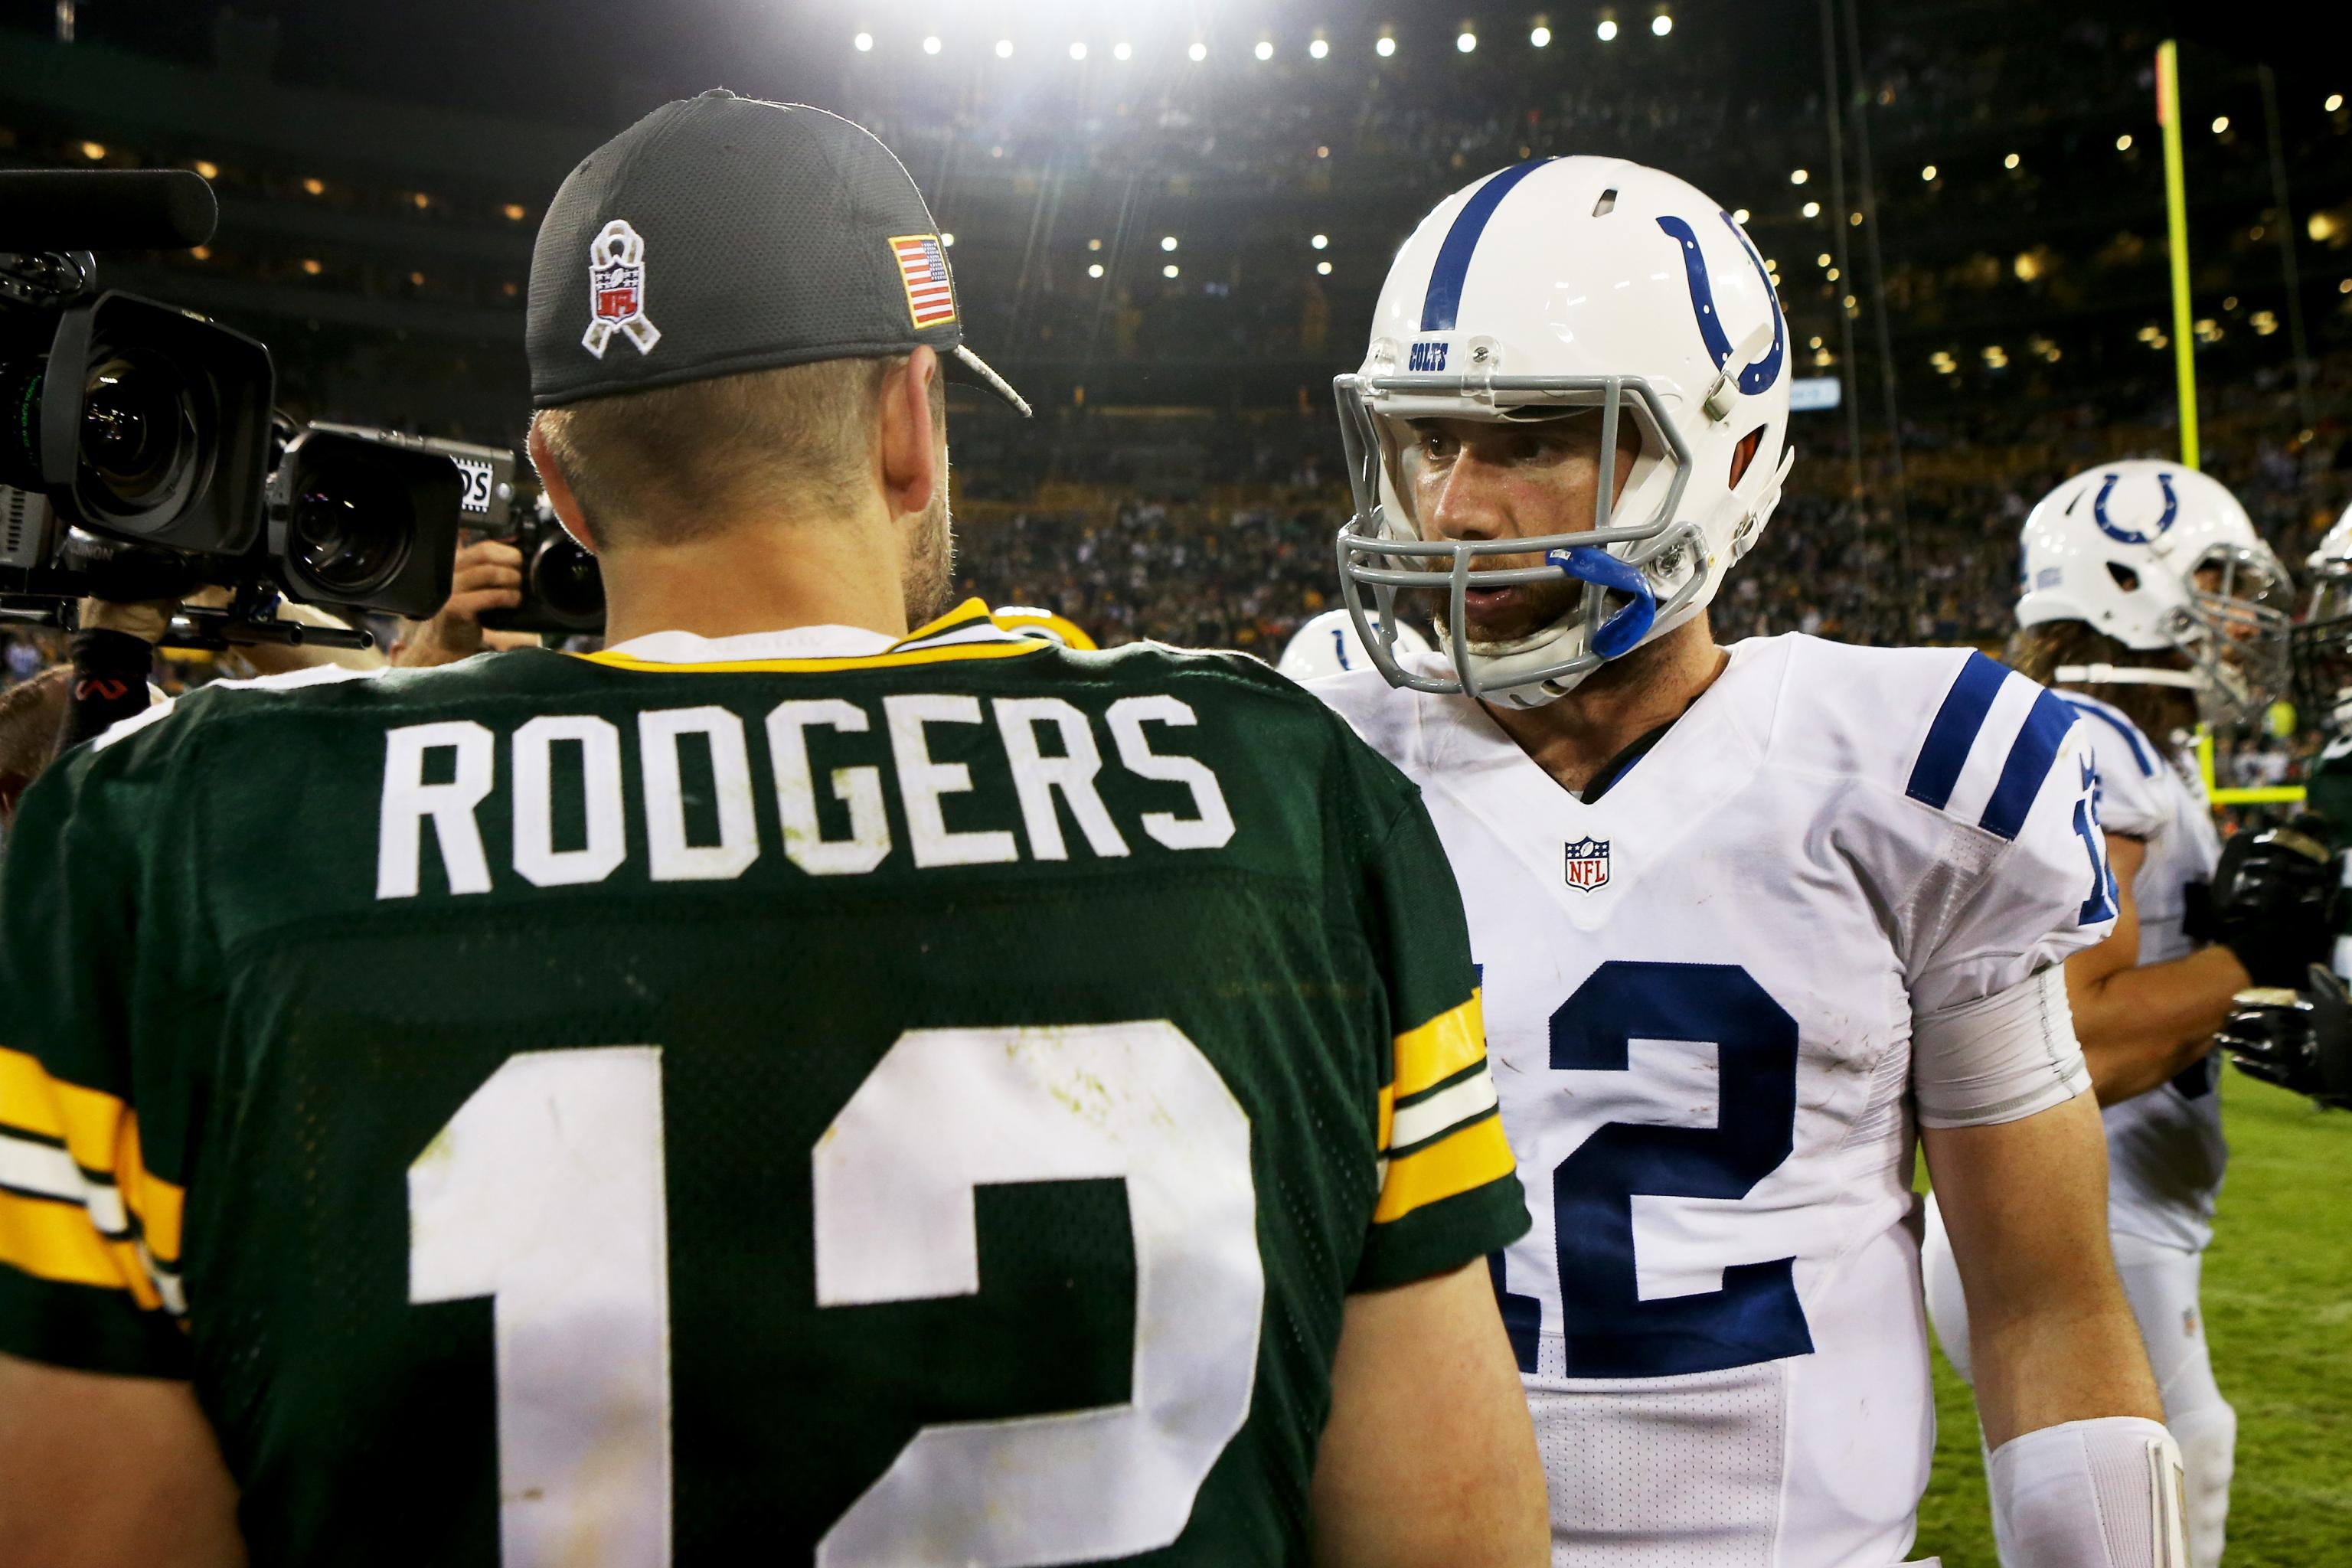 huge selection of 5eb34 33037 Aaron Rodgers Felt 'Disgust' with Reaction to 'Unselfish ...